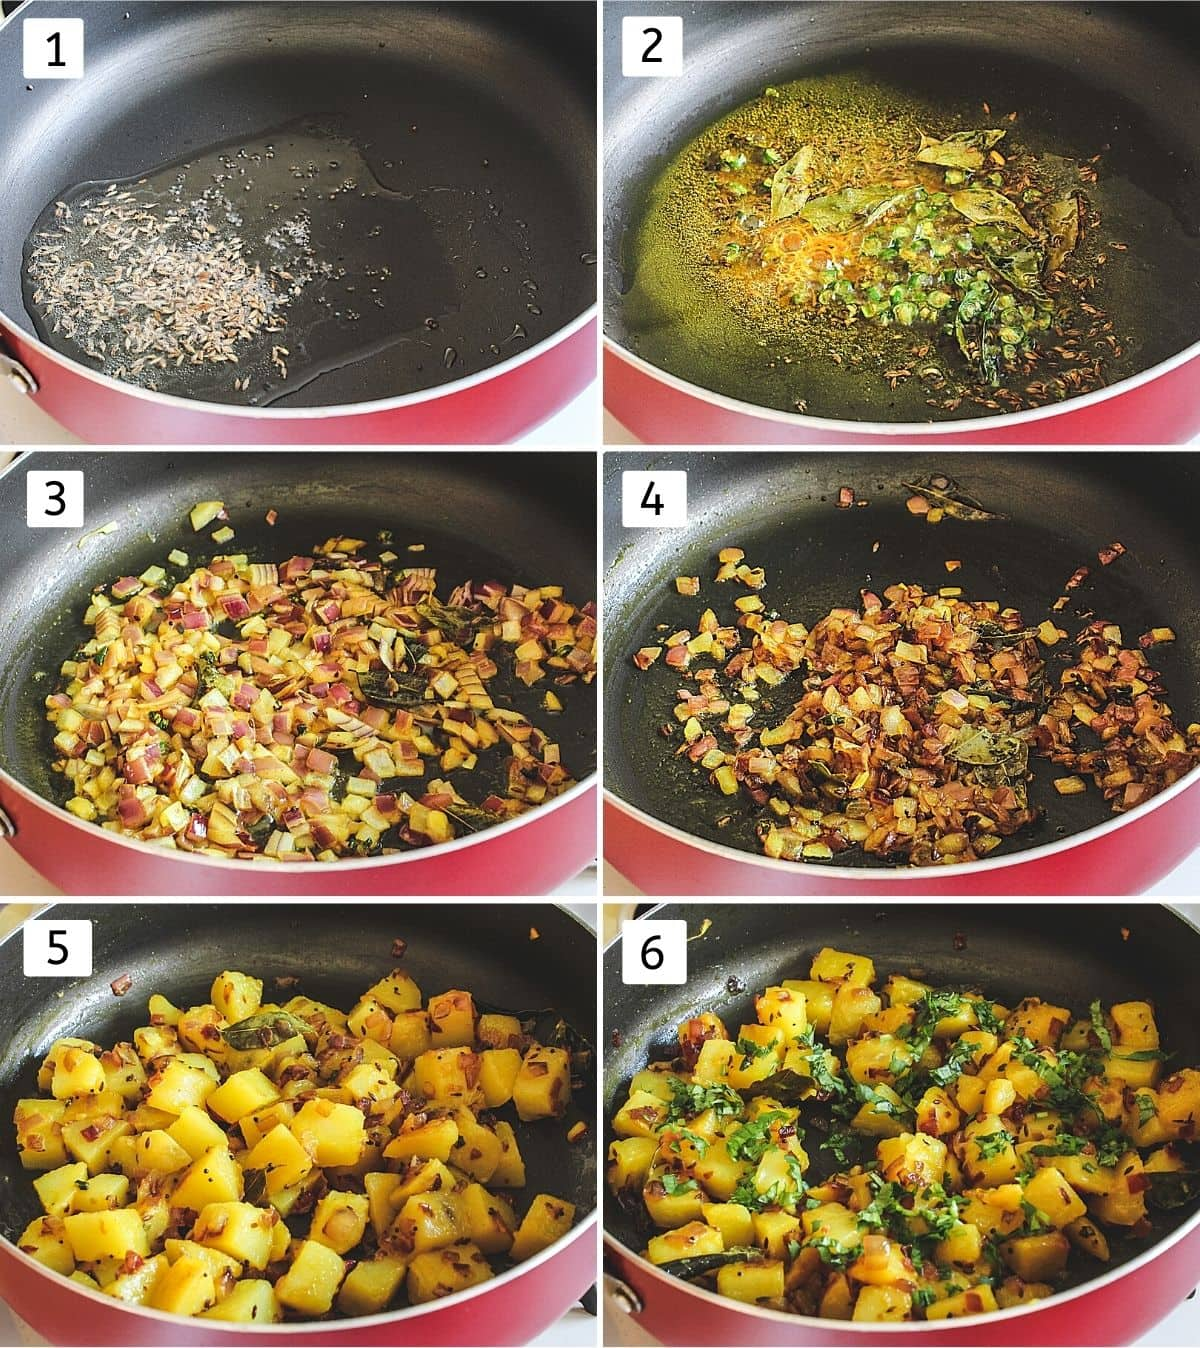 collage of 6 steps of making potato bhaji. Showing sauteing spices, curry leaves, onion, mixing potatoes and cilantro.